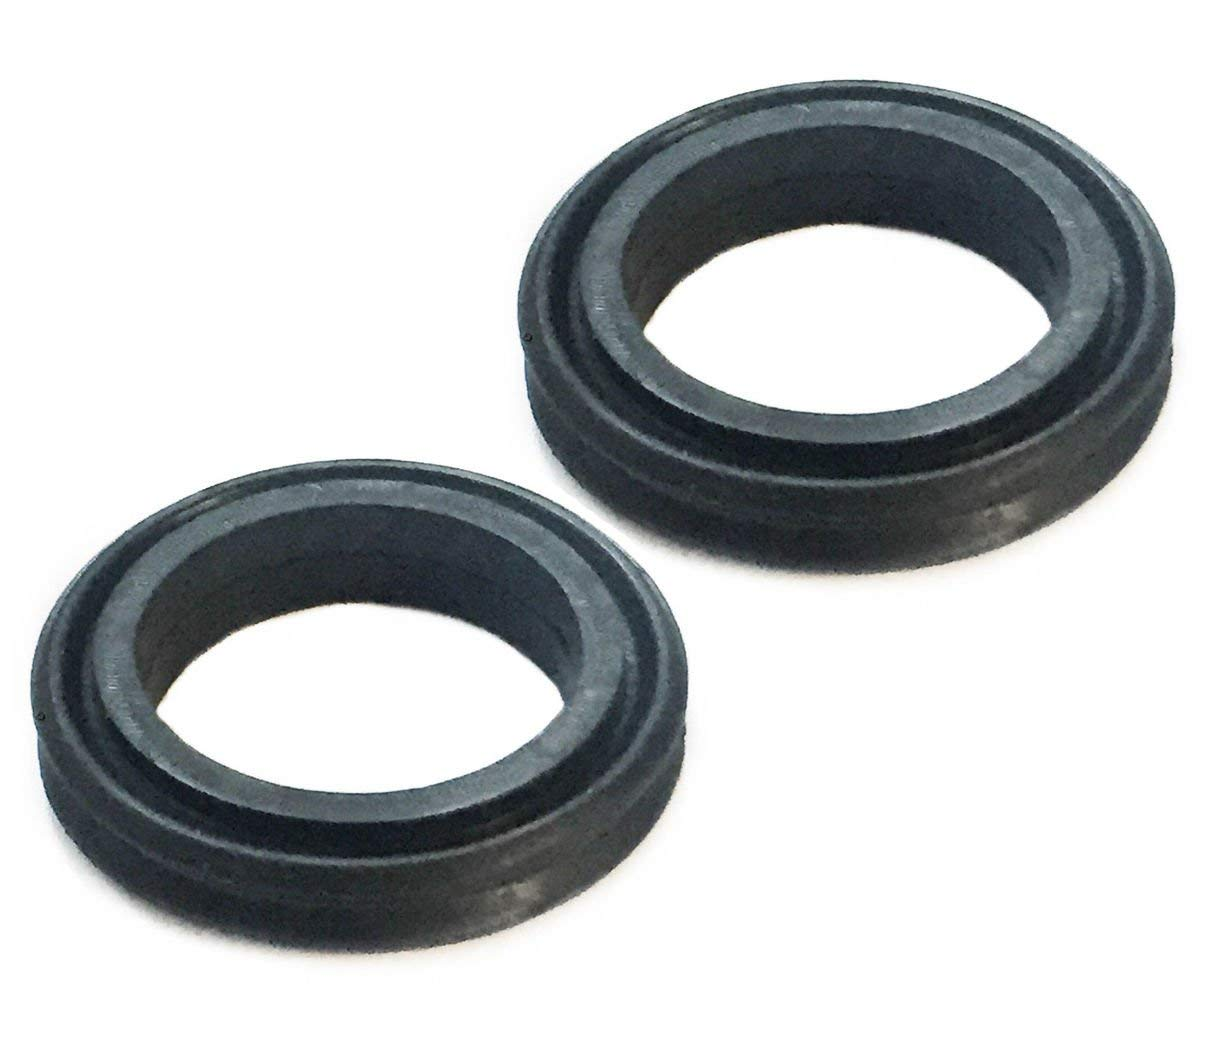 LAND ROVER RANGE ROVER 2003-2005 4.4L V8 PETROL TRANS COOLER SEAL SET OF 2 PART: PYX000070